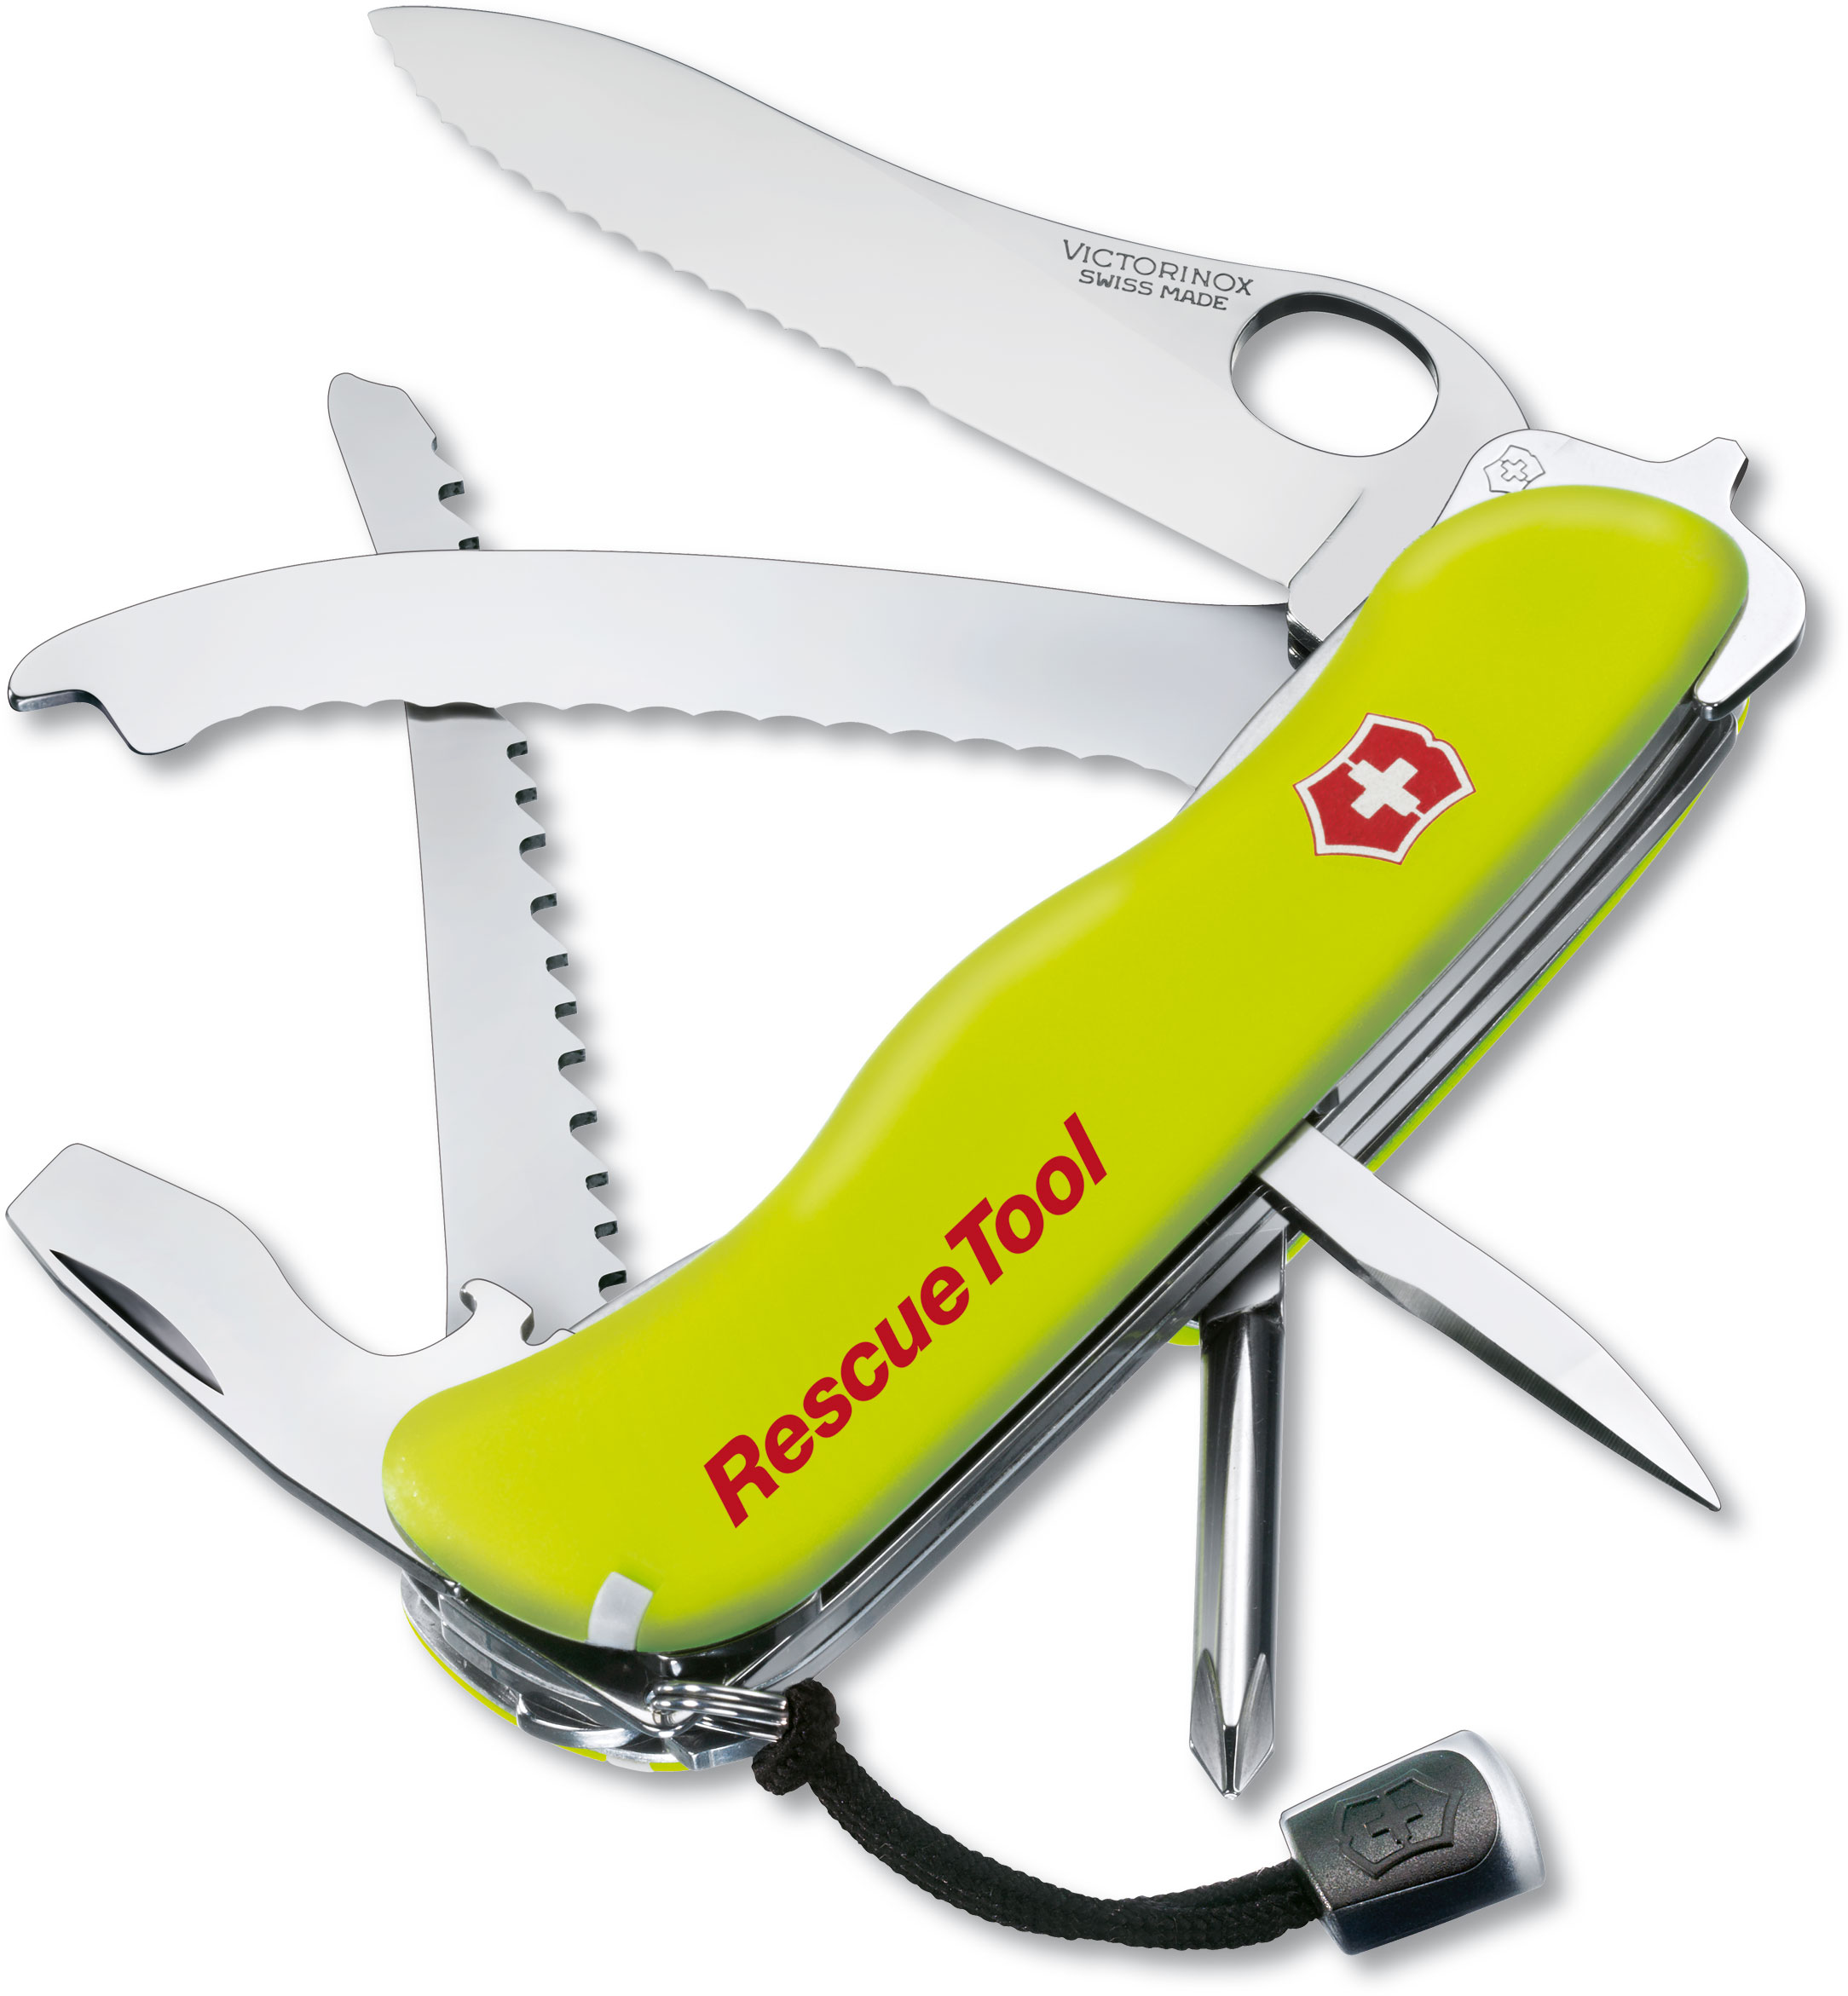 Victorinox Swiss Army RescueTool Multi-Tool, Yellow, 4.37 inch Closed